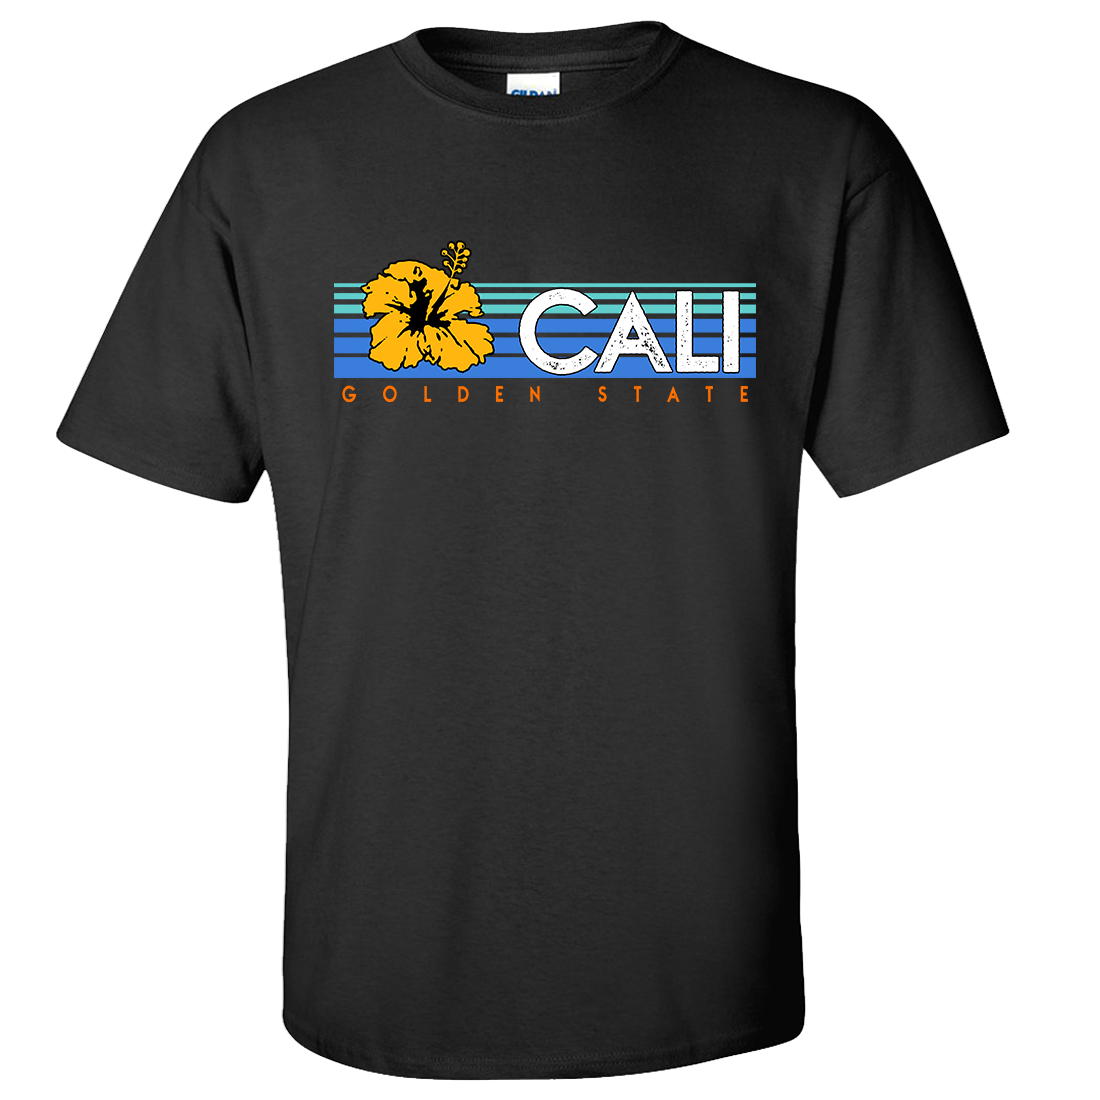 Cali Golden State Hibiscus Asst Colors T-shirt/tee